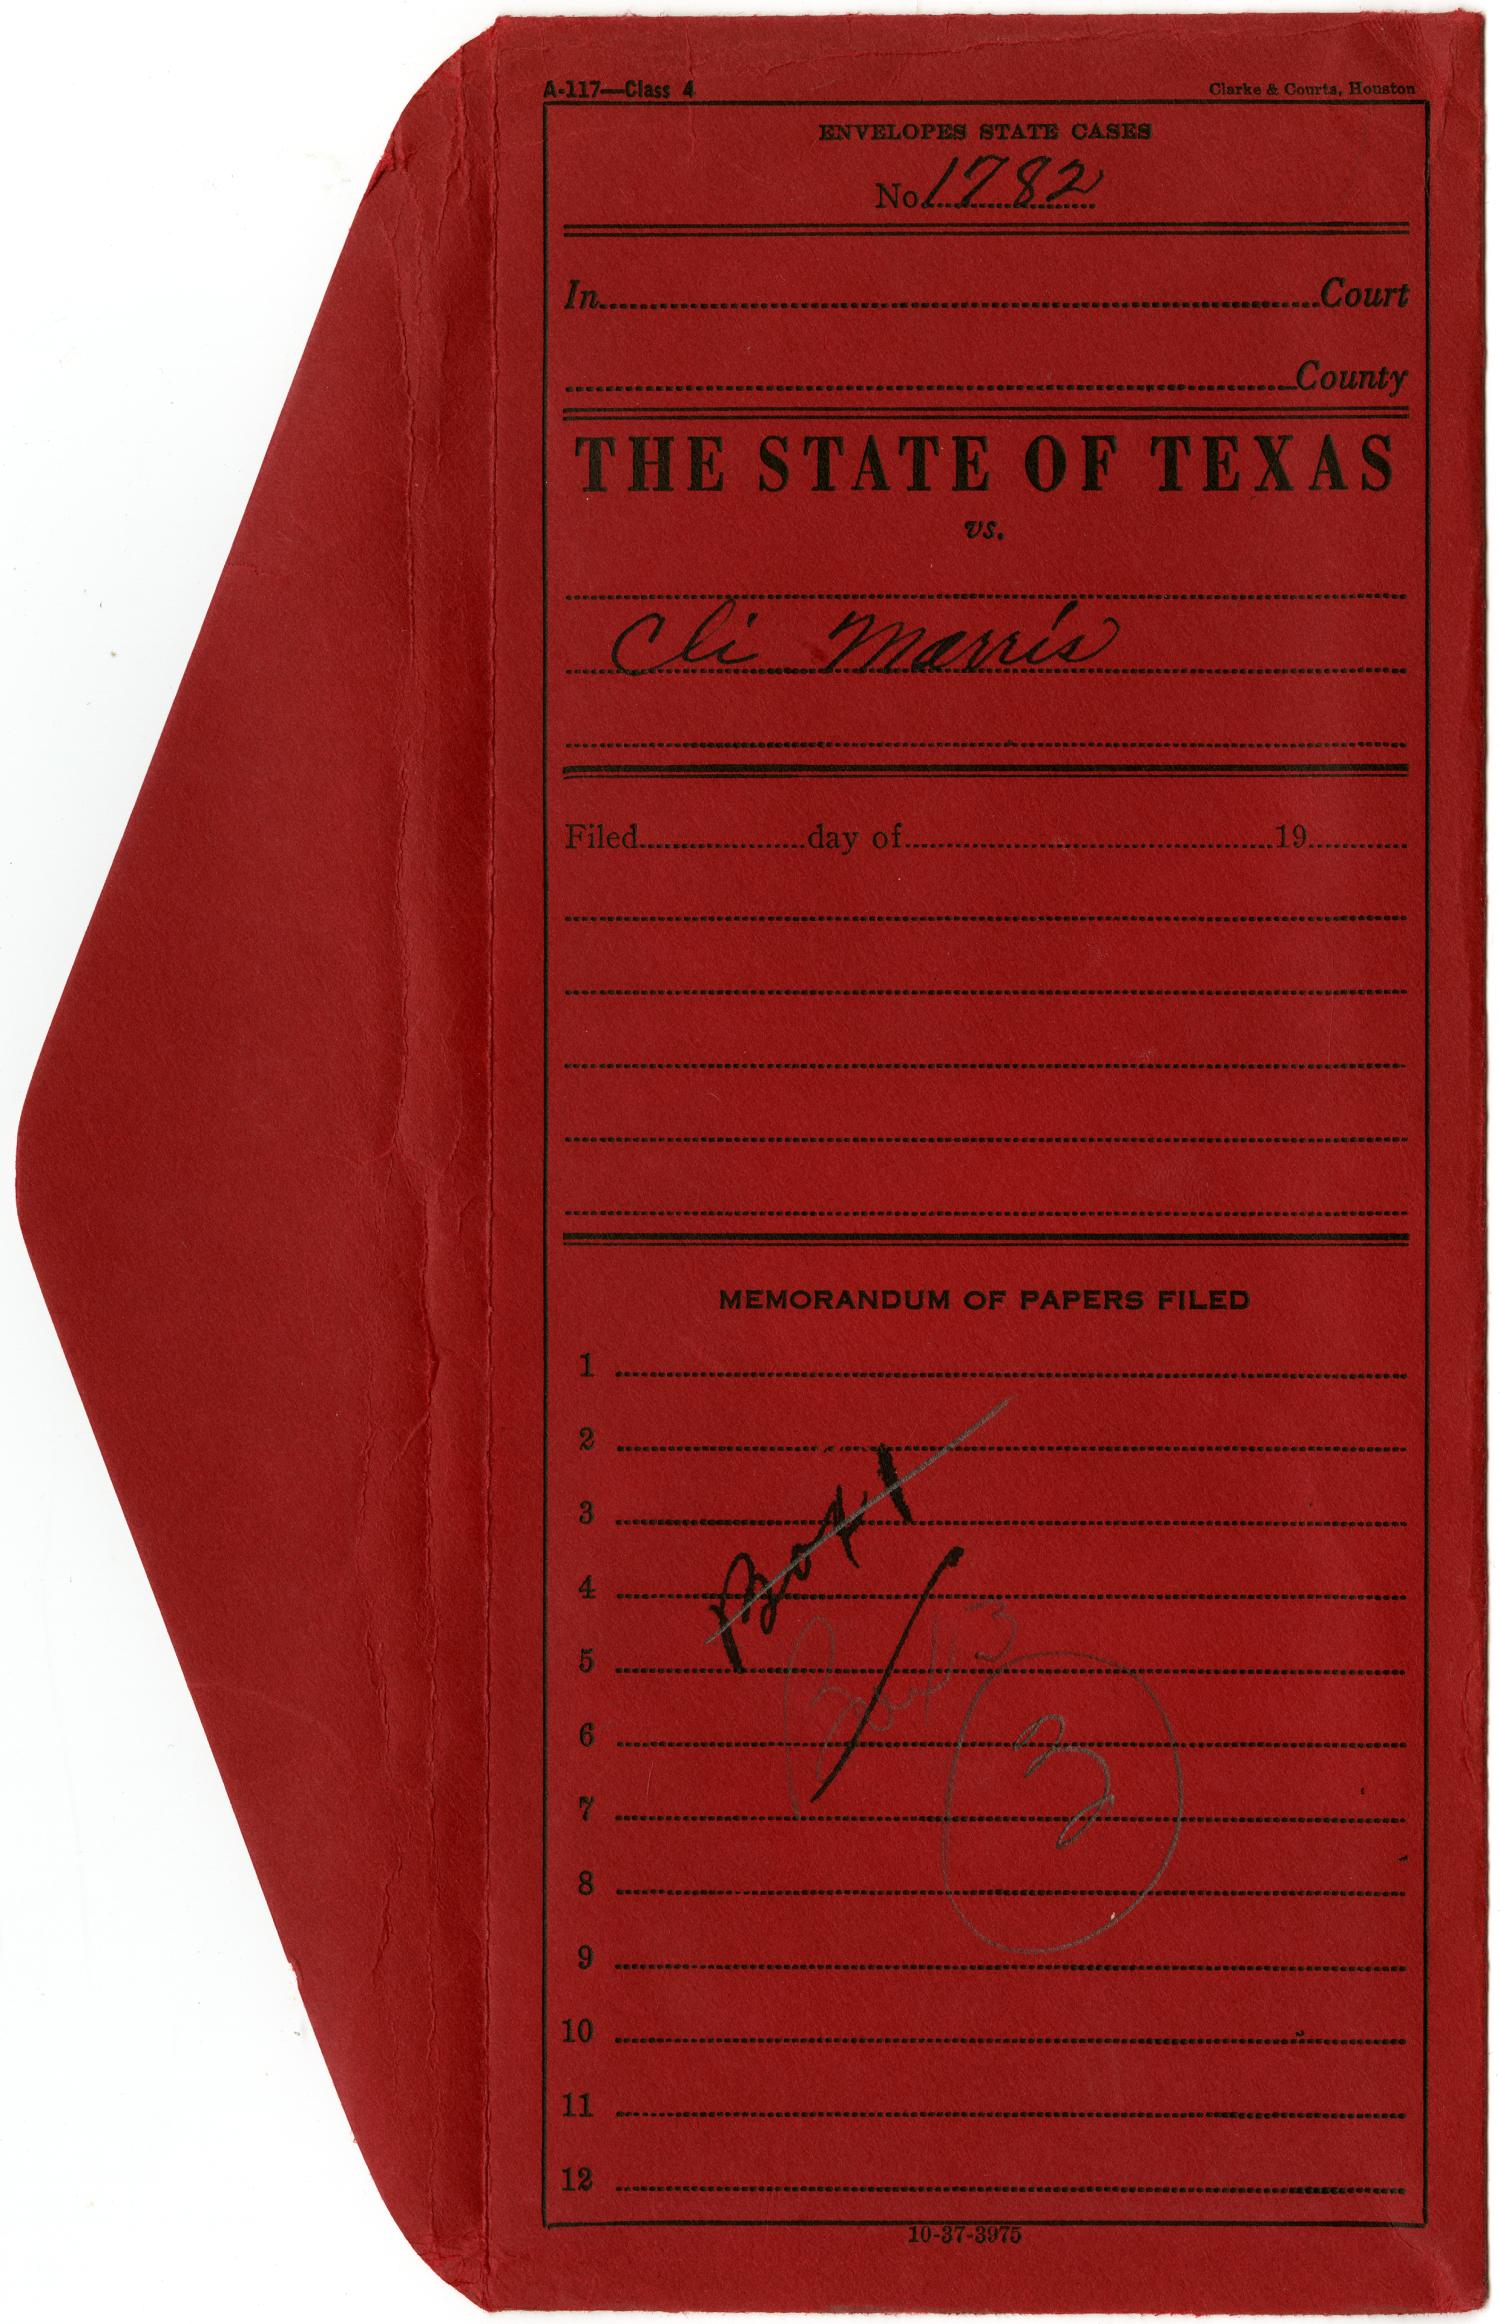 Document pertaining to the case of The State of Texas vs. Cle. Mooris, cause no. 1782, 1885                                                                                                      [Sequence #]: 1 of 56